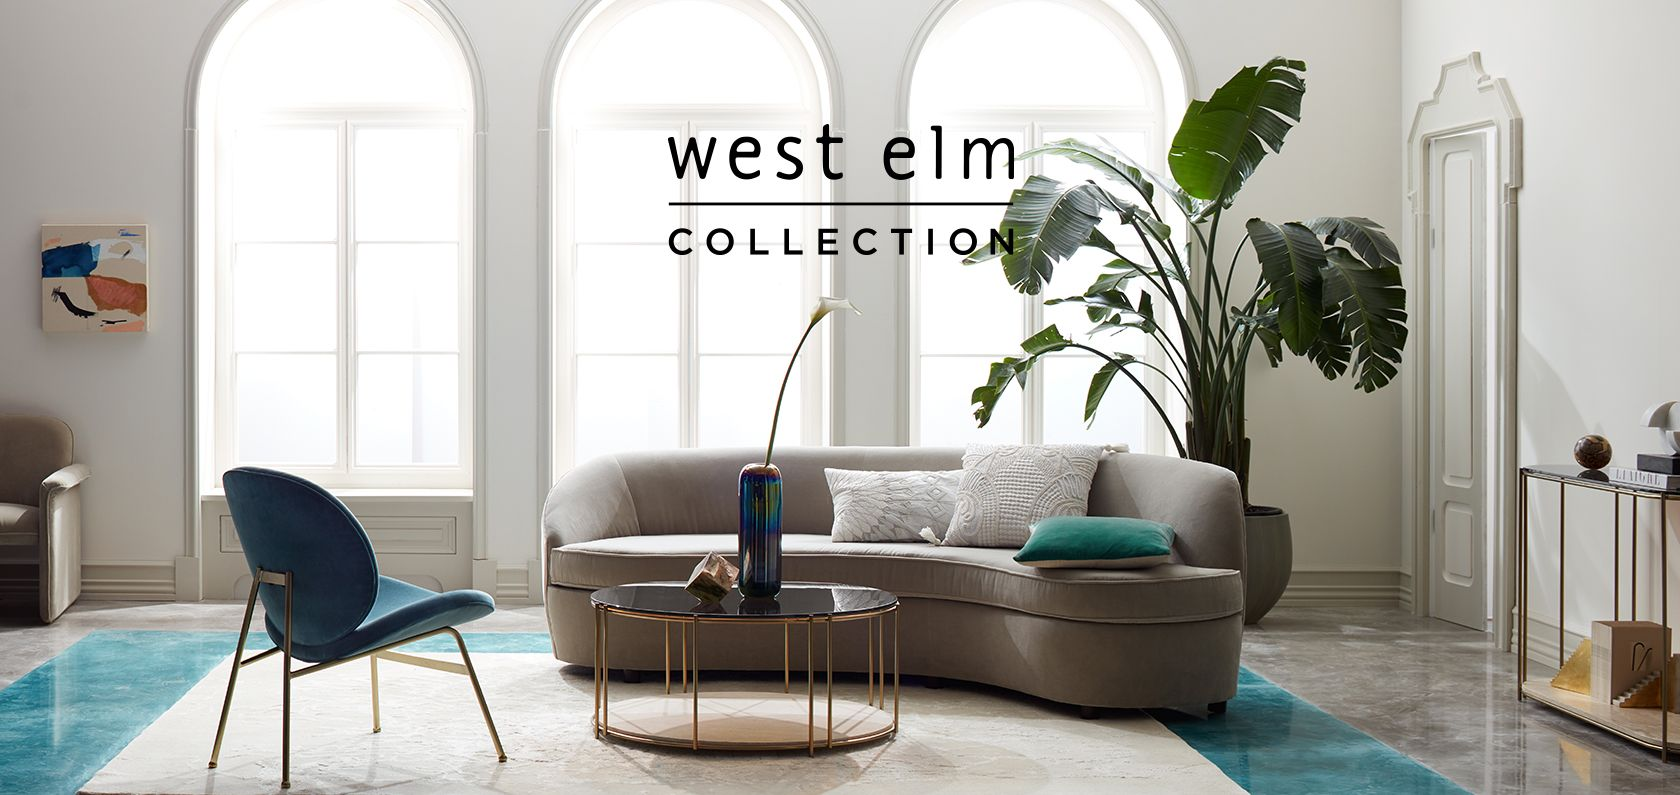 West Elm Collection With Images Furniture Home Decor Tips